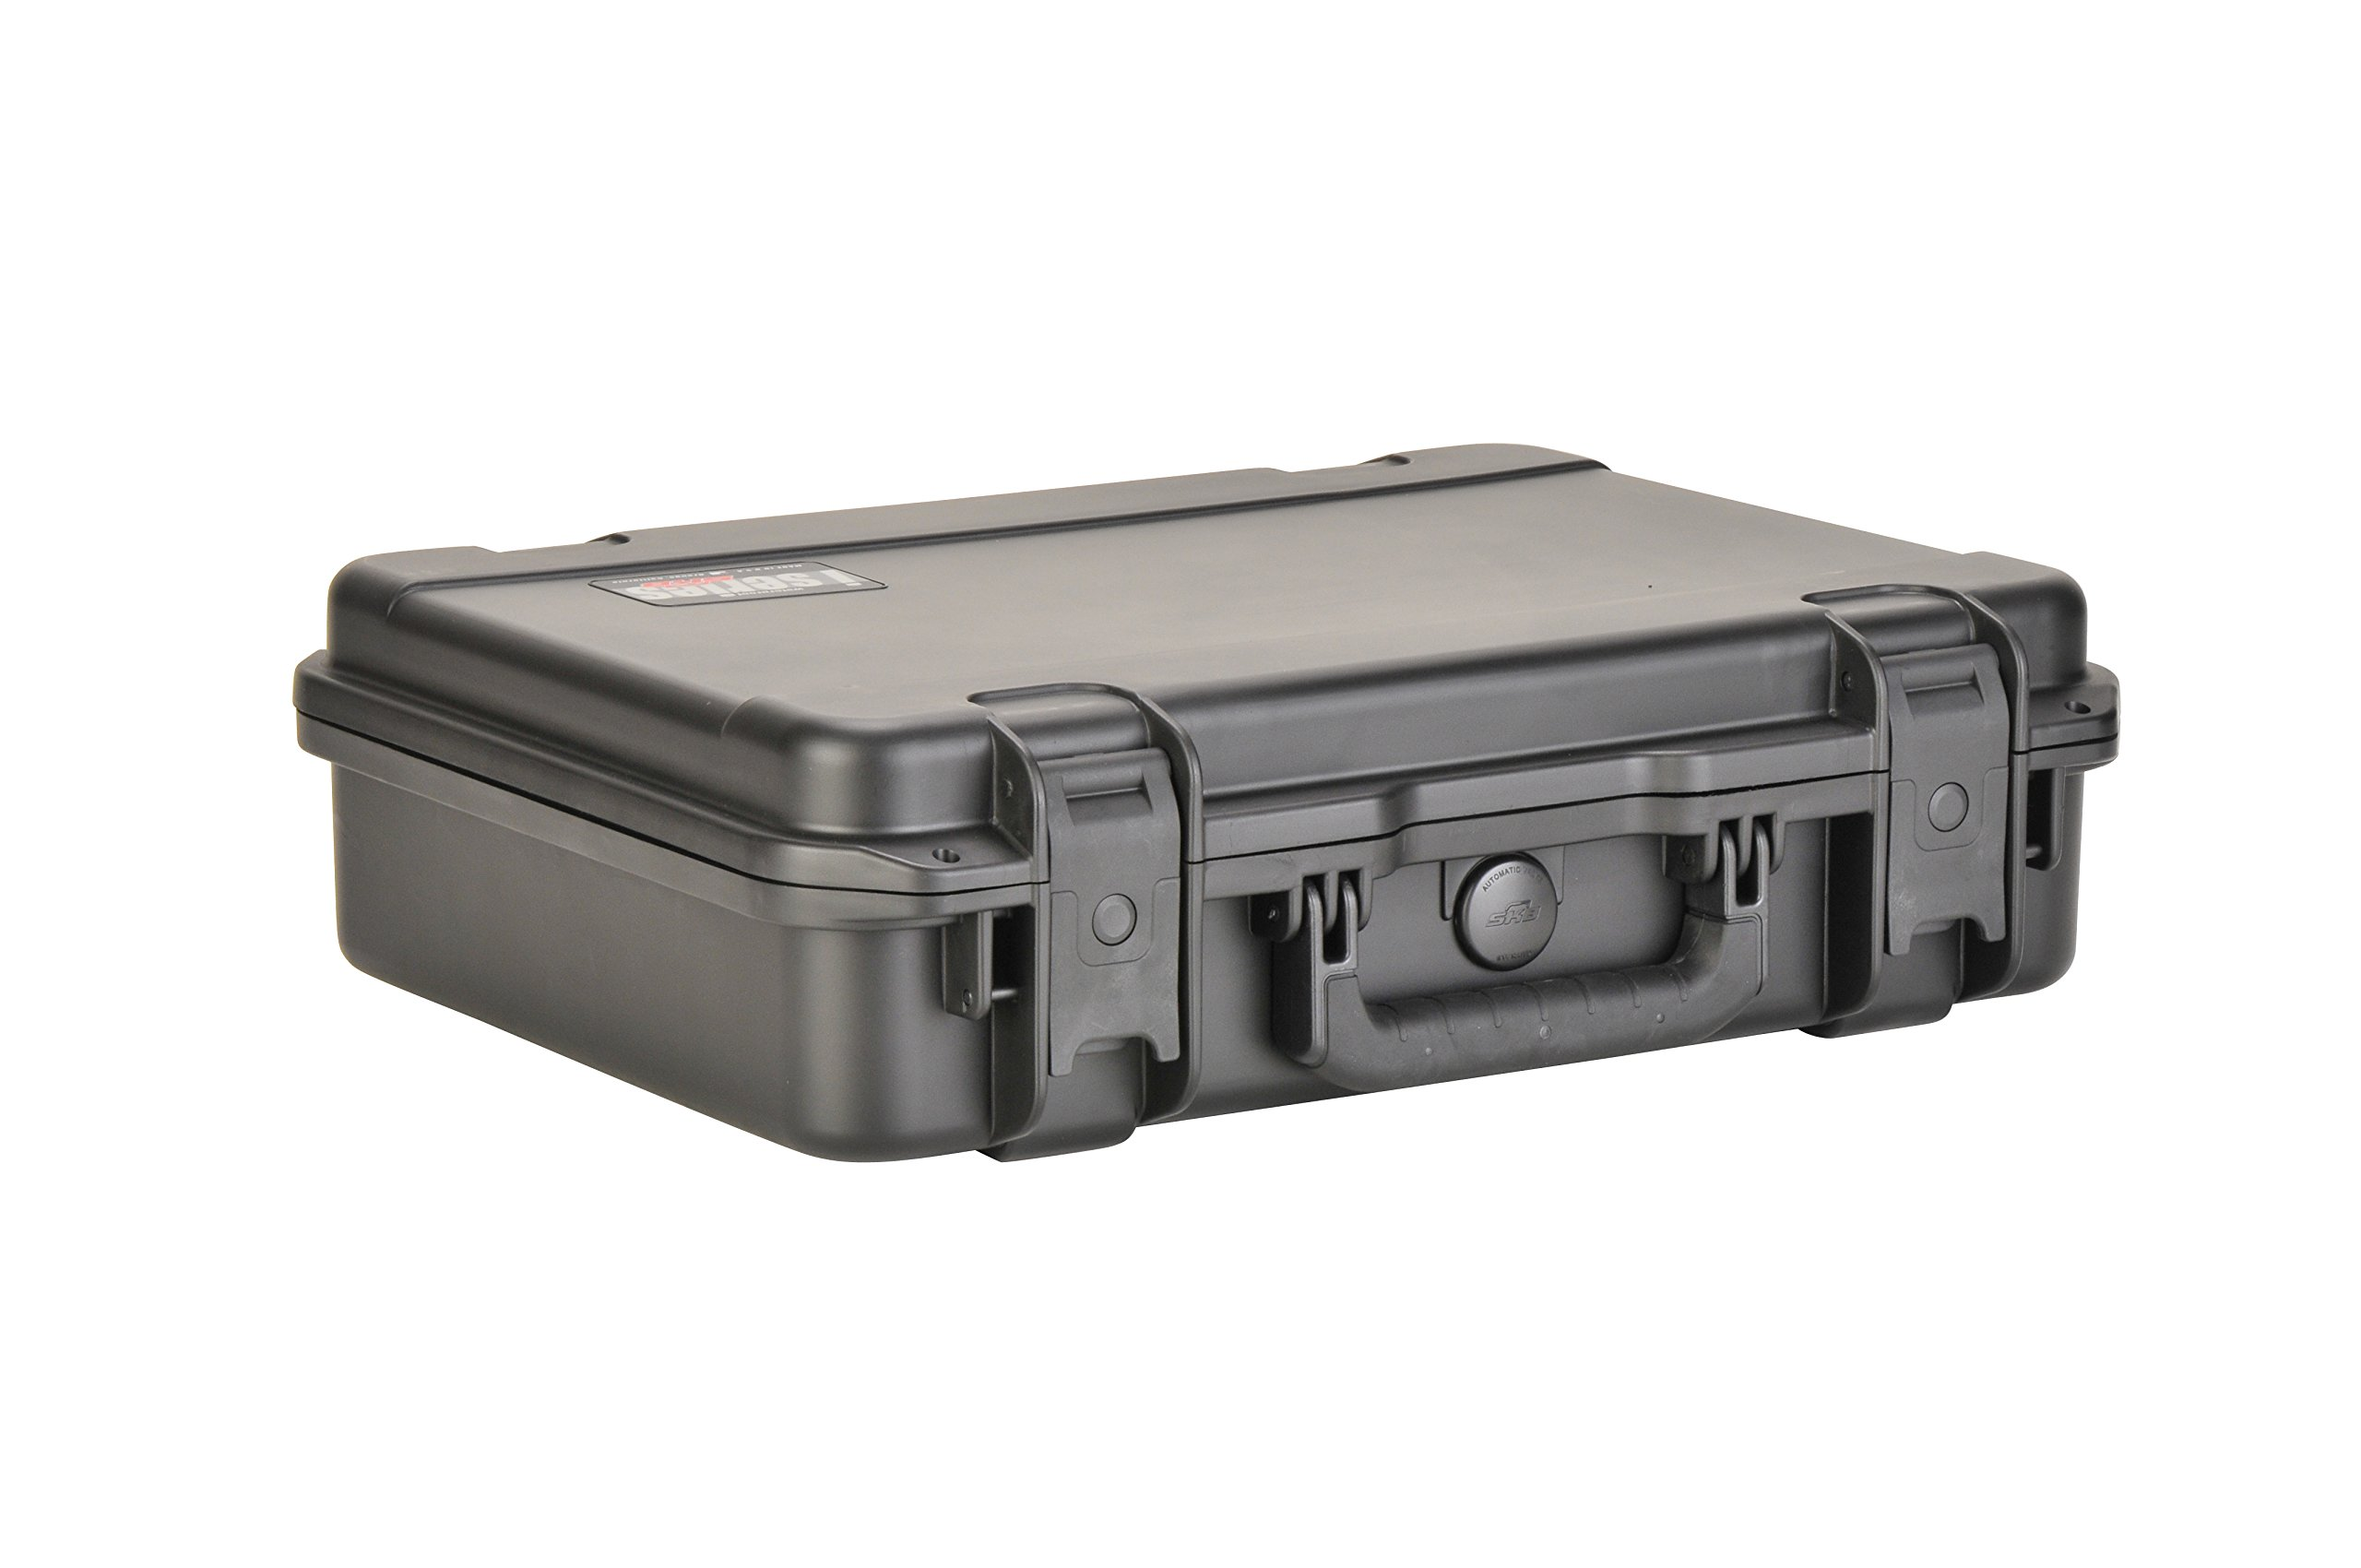 SKB 3I-1813-5B-D Mil-Std Waterproof Case with Dividers